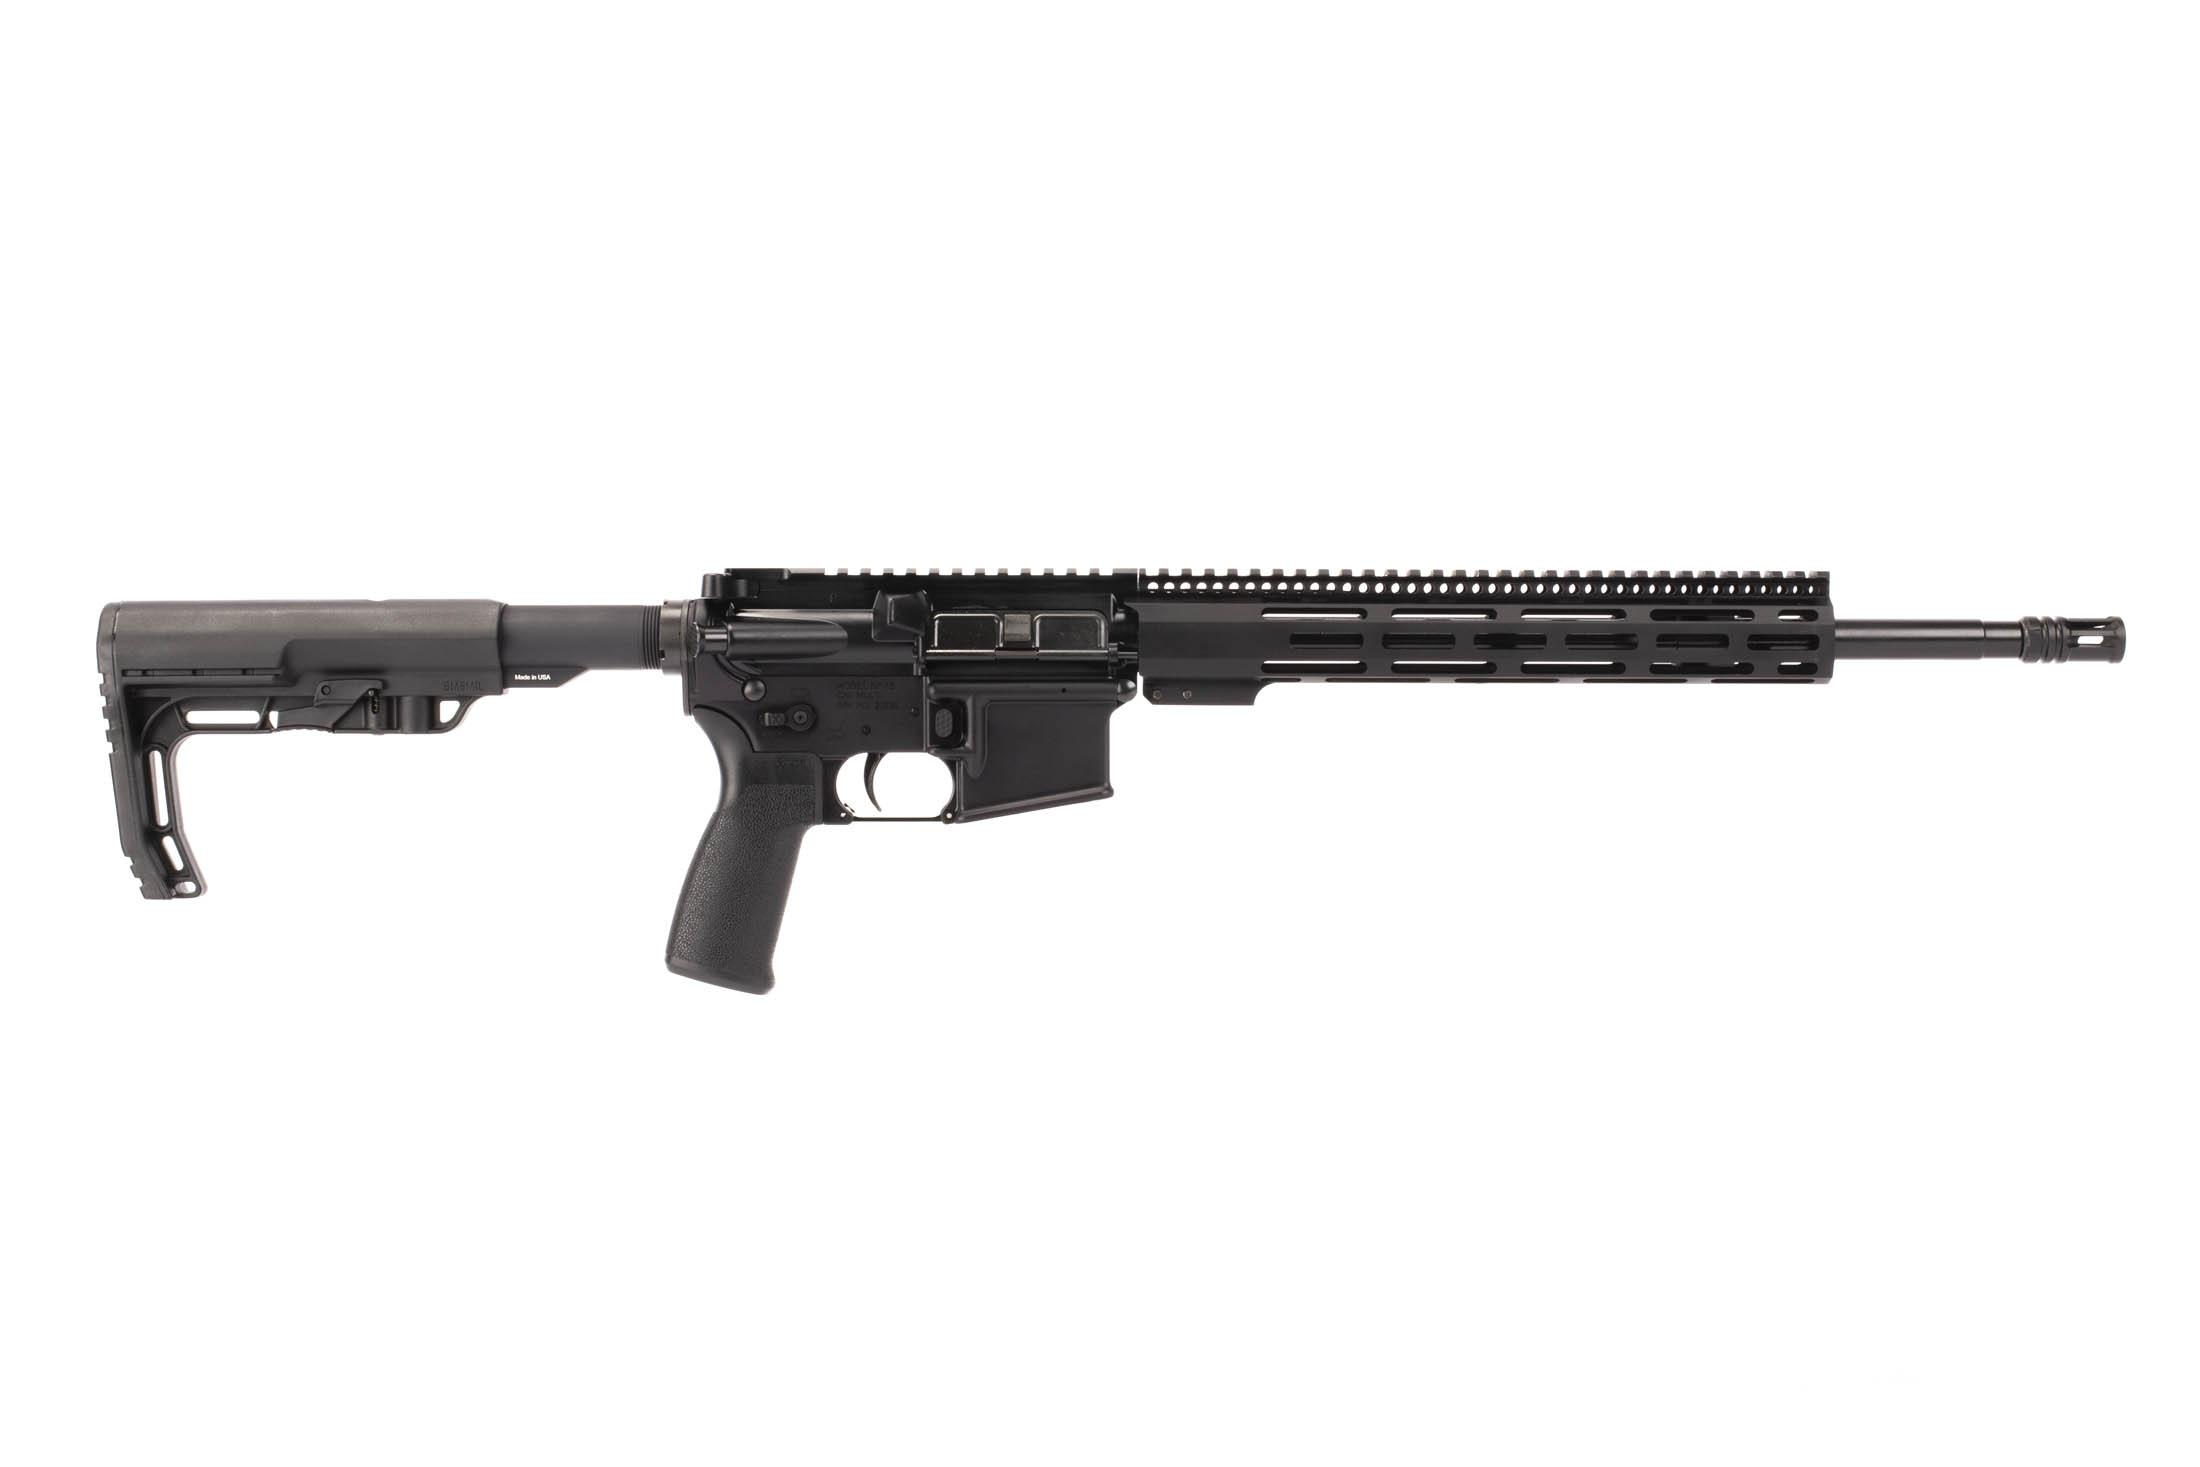 Radical Firearms complete 16in 5.56 NATO AR-15 with mid-length gas system and 12in gen 3 FCR M-LOK rail